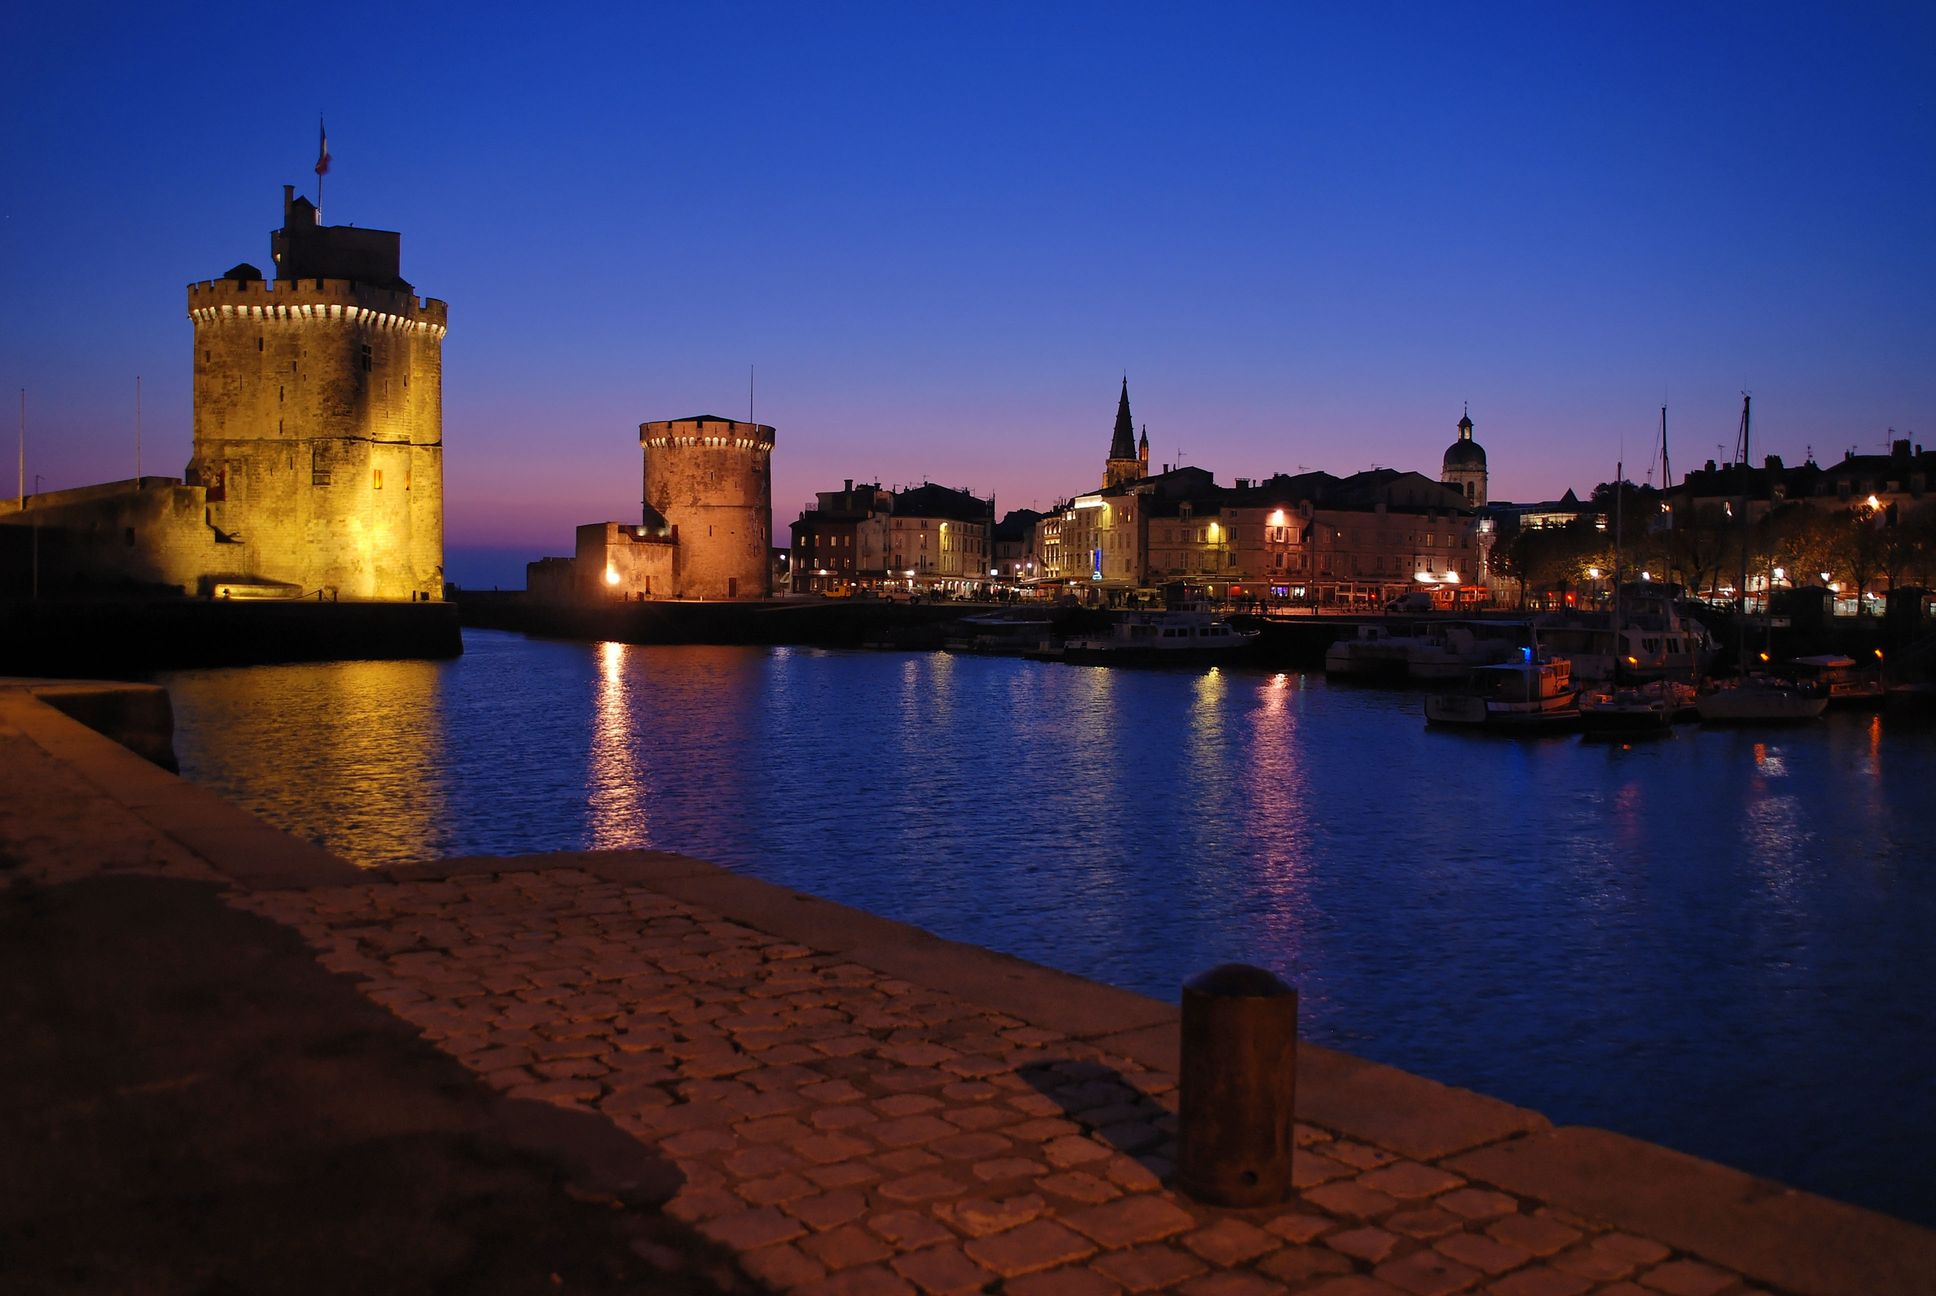 La Rochelle Photos - Featured Images of La Rochelle, Charente La rochelle france photos